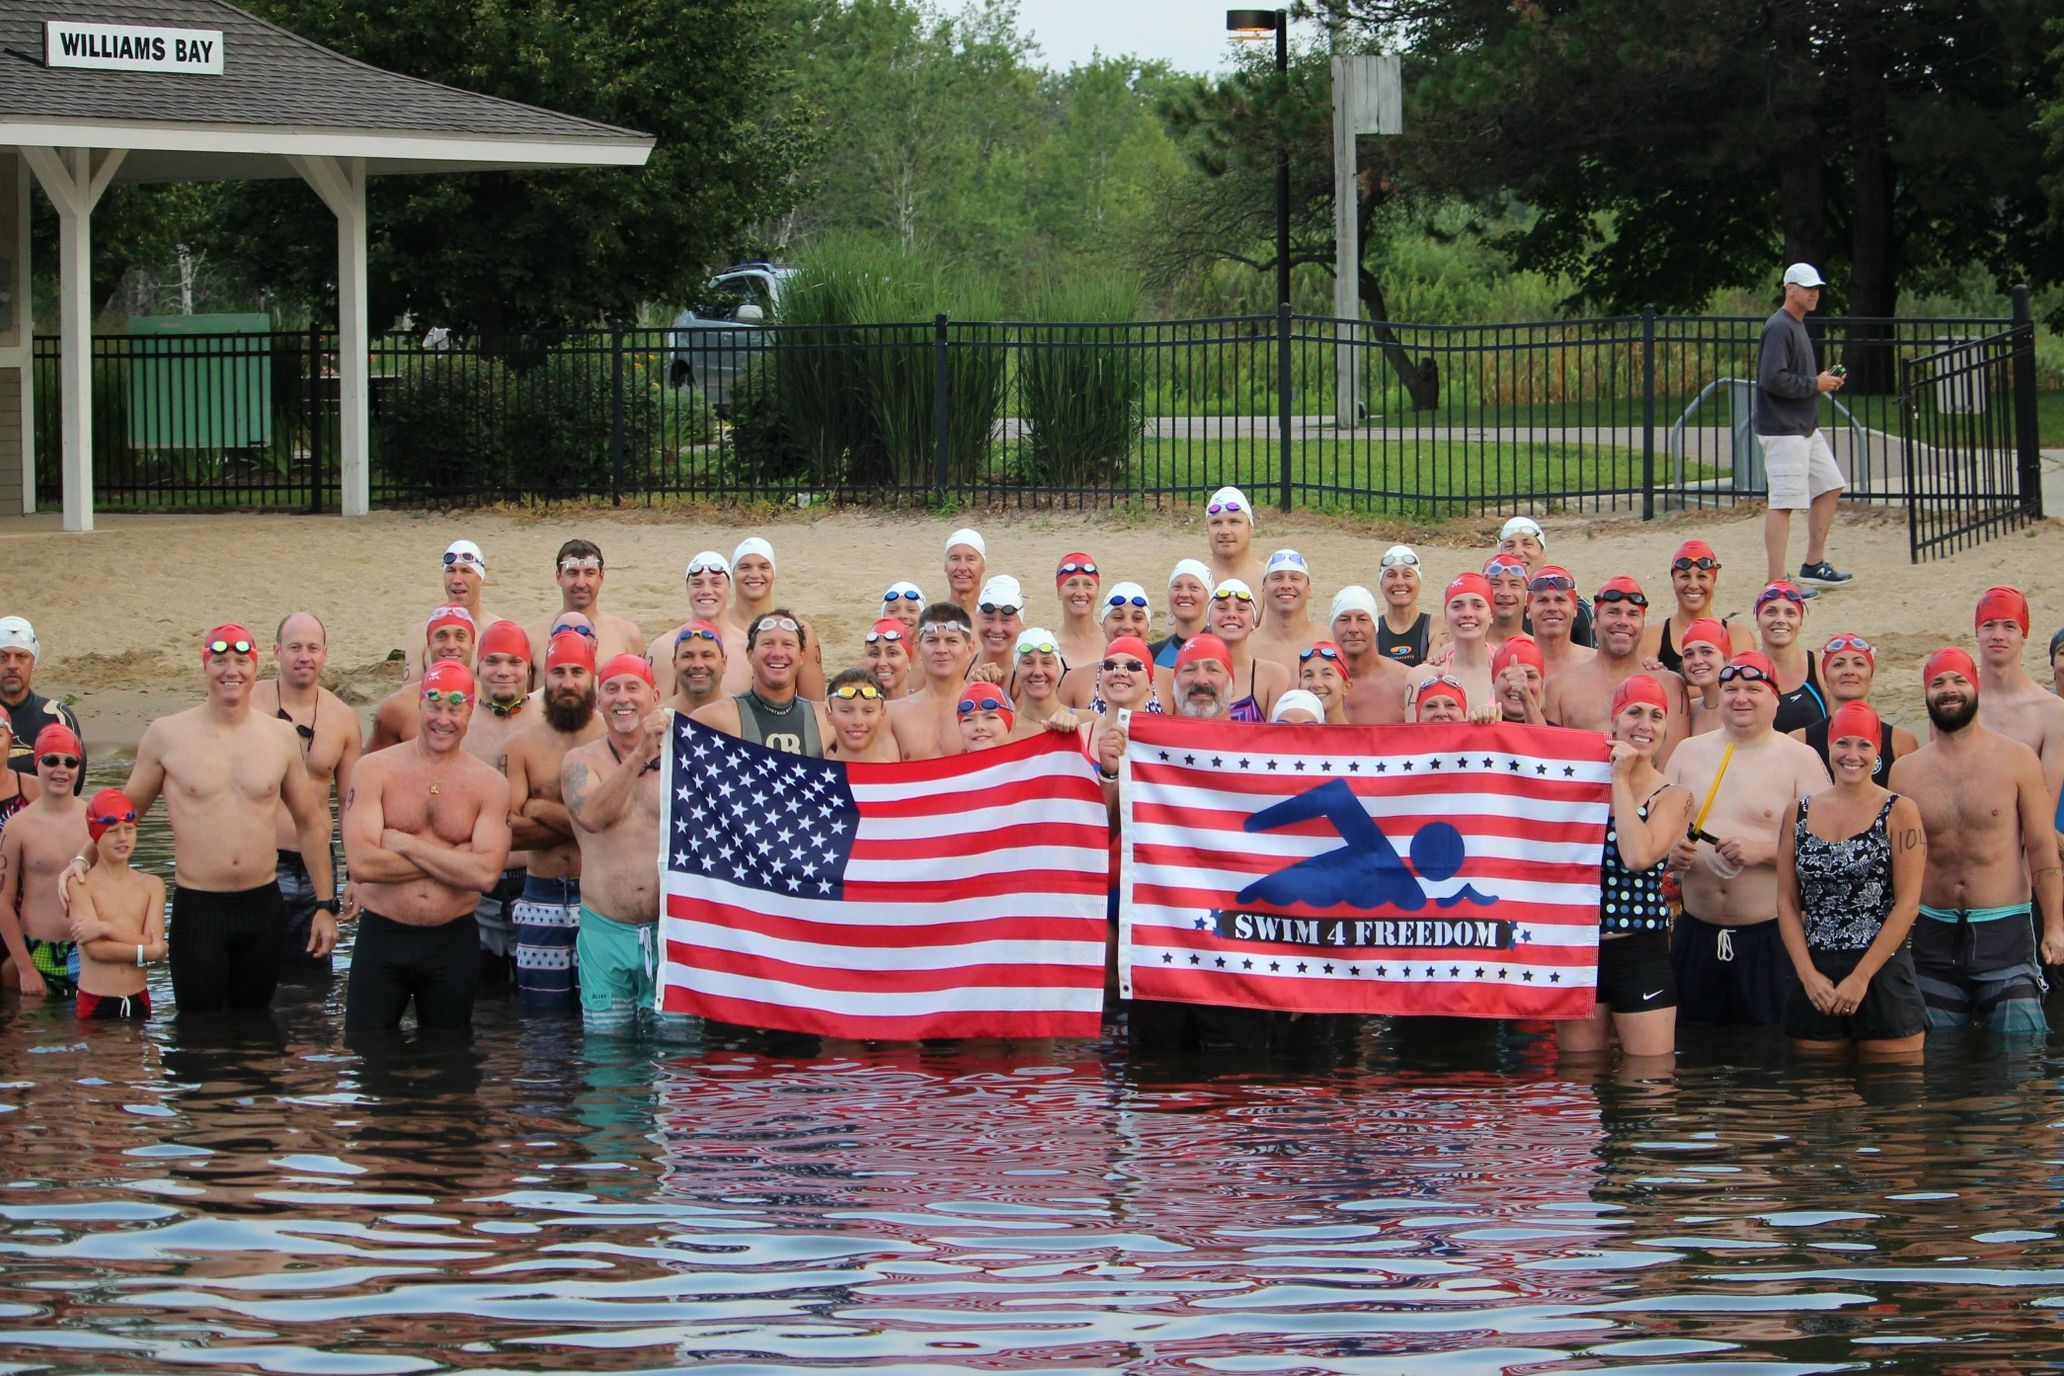 Swim4Freedom starting line up in Williams Bay, WI